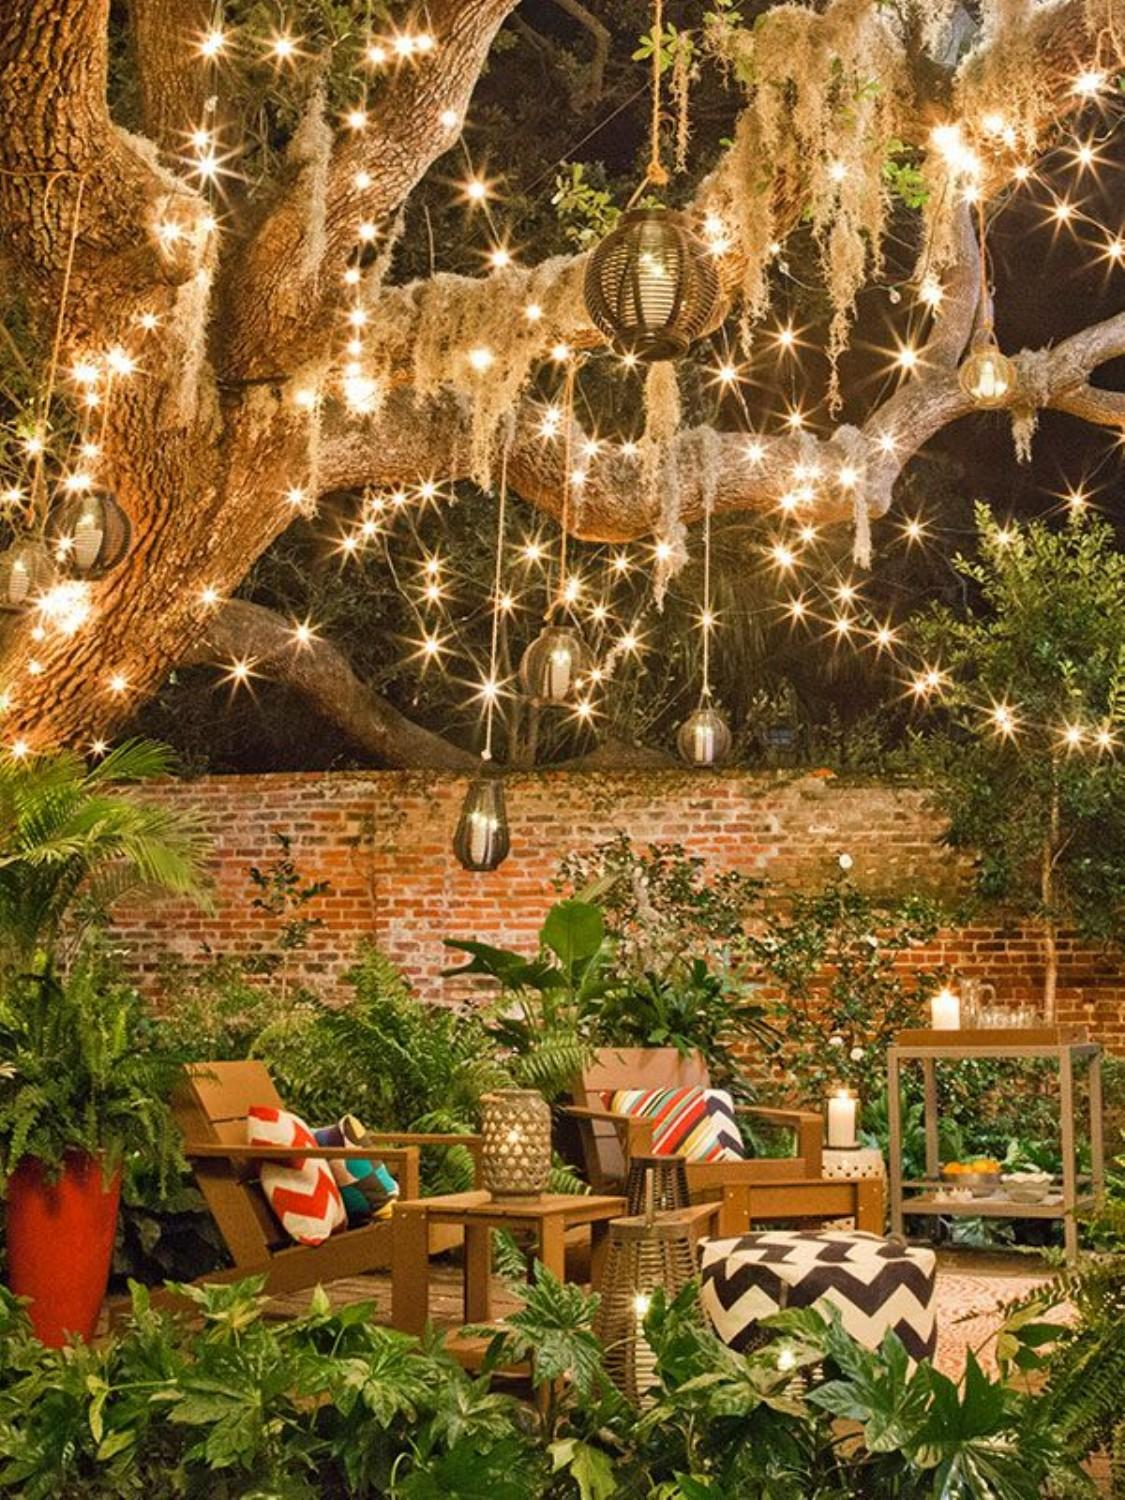 Sparkling Fairy Lights and Lounge Chairs